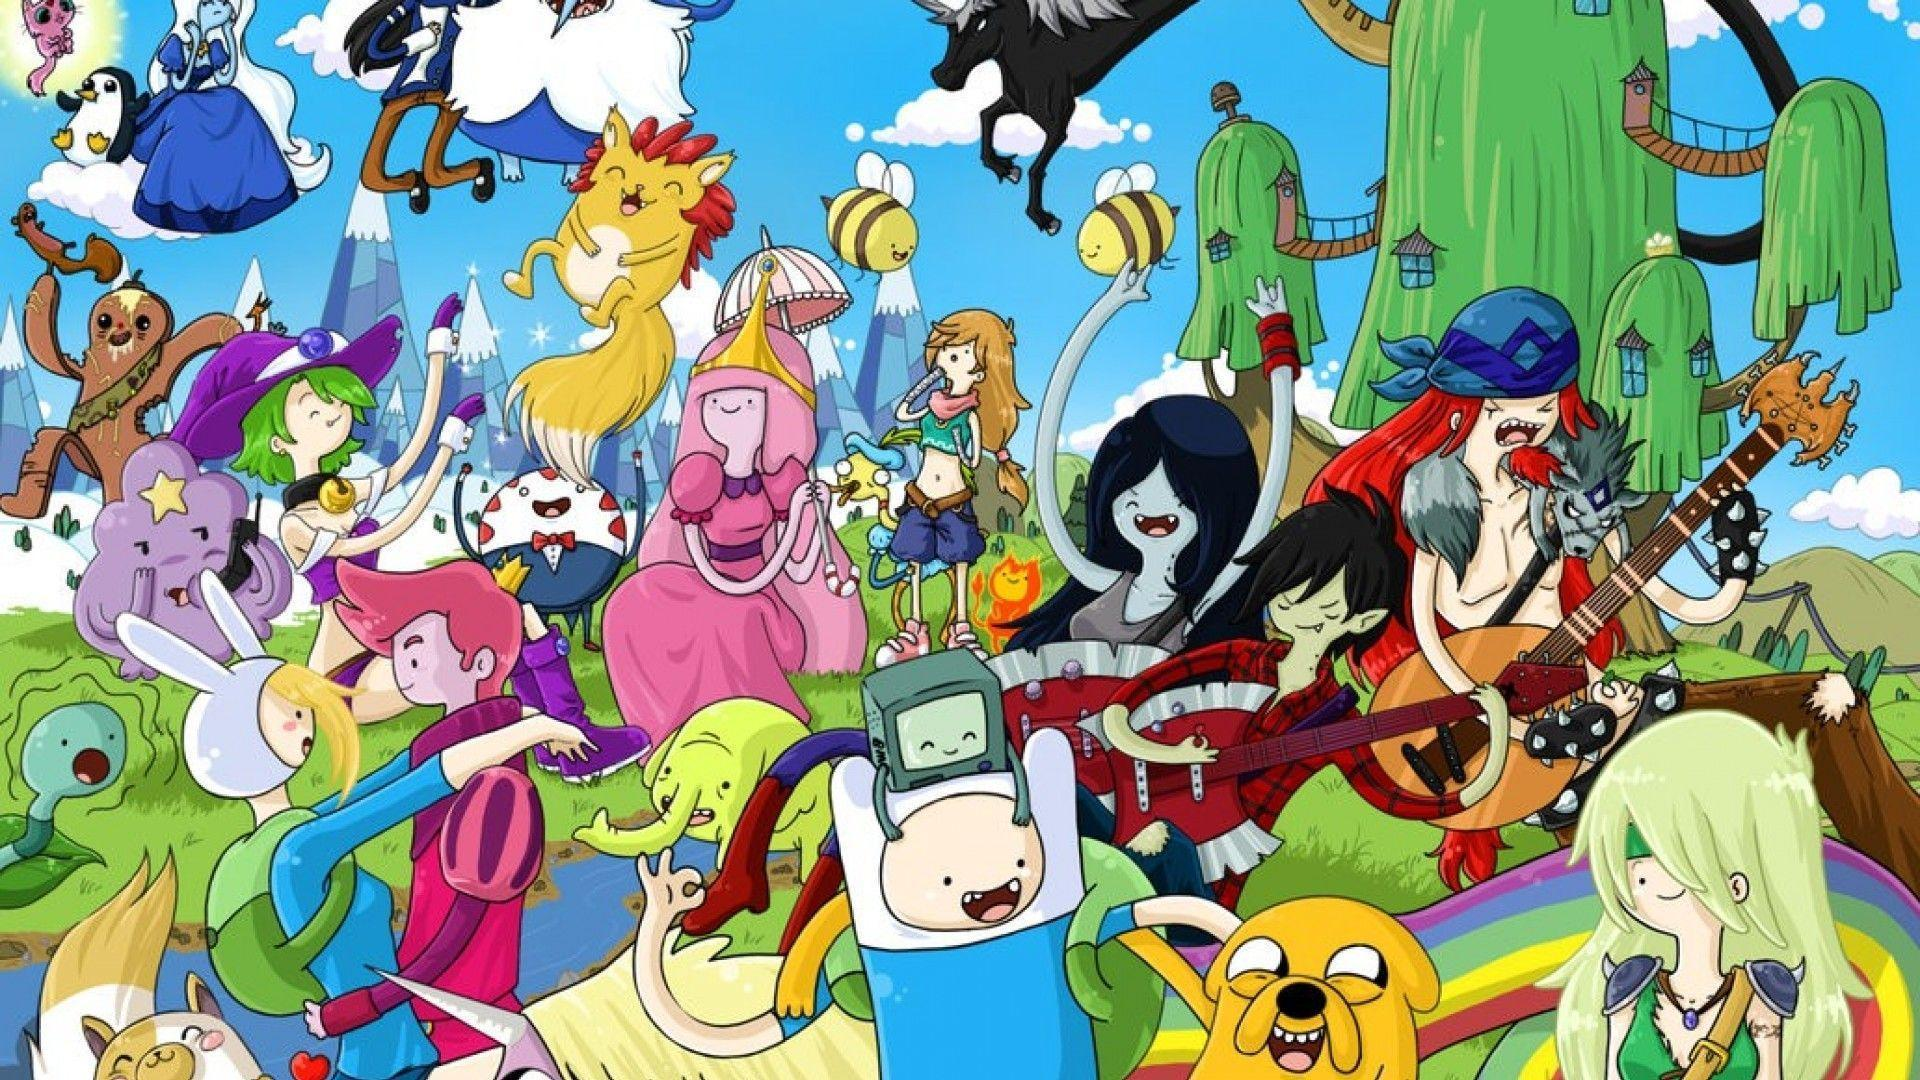 Adventure Time Screensaver Wallpaper Images 11 Cool Hd | Wallpaperiz.